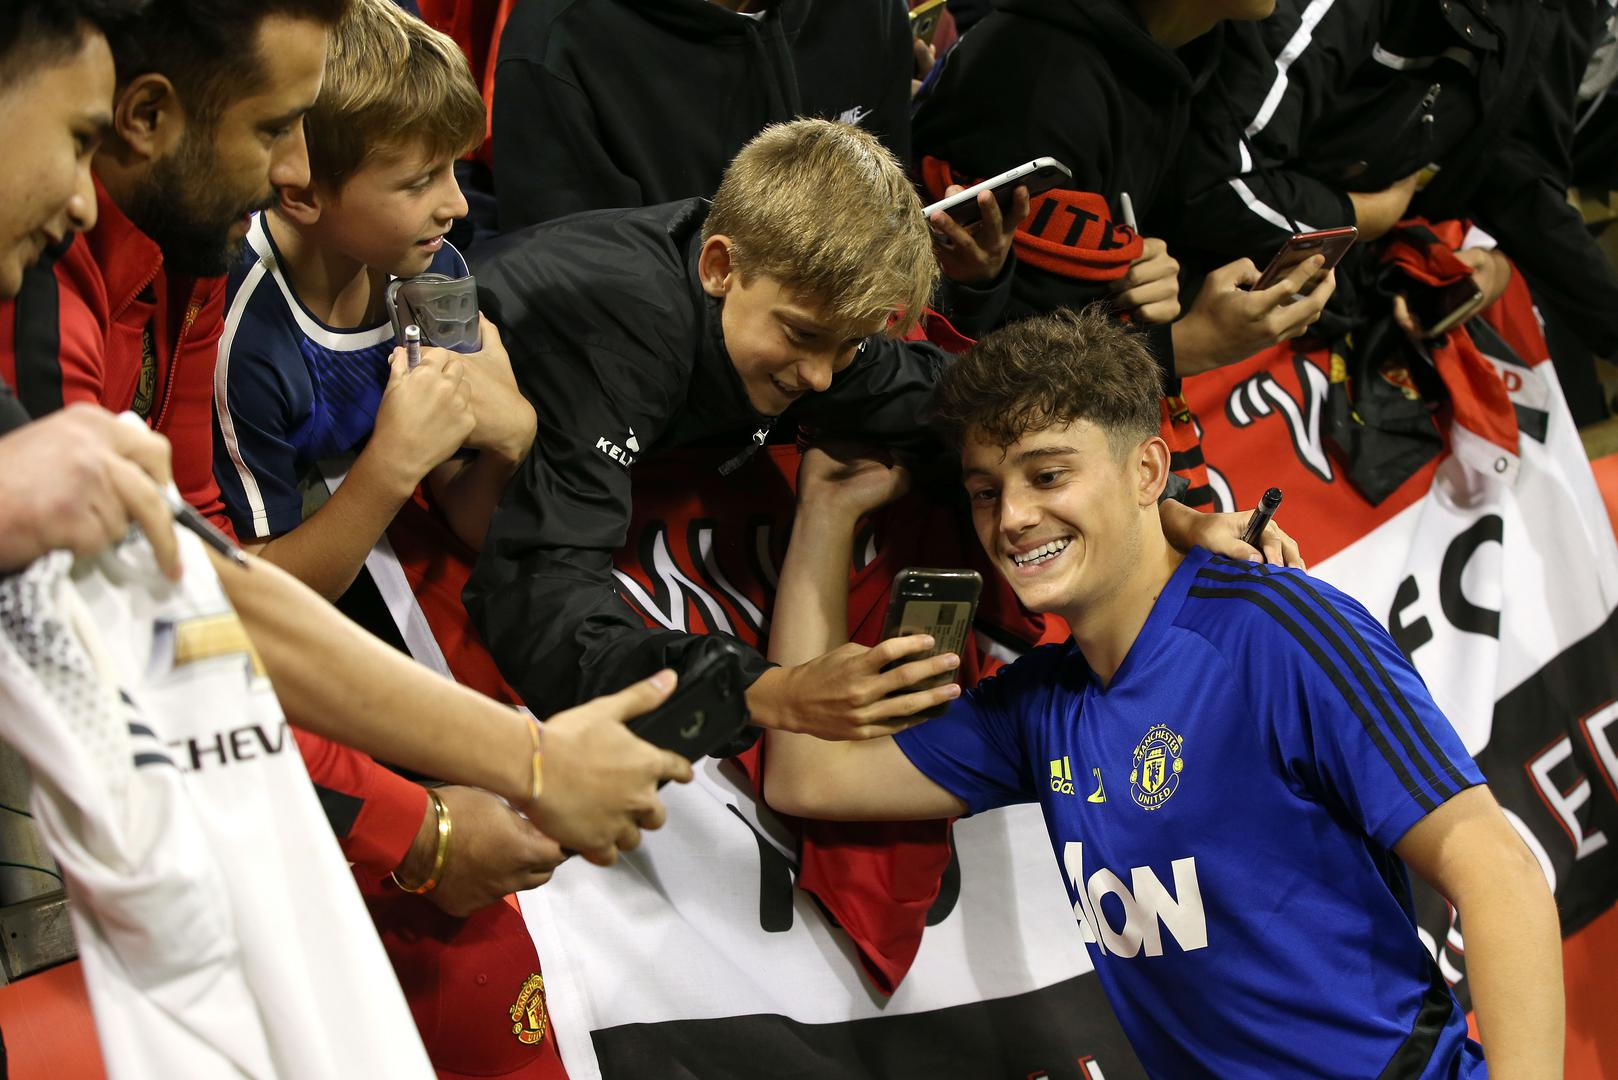 Daniel James meeting United fans in Perth.